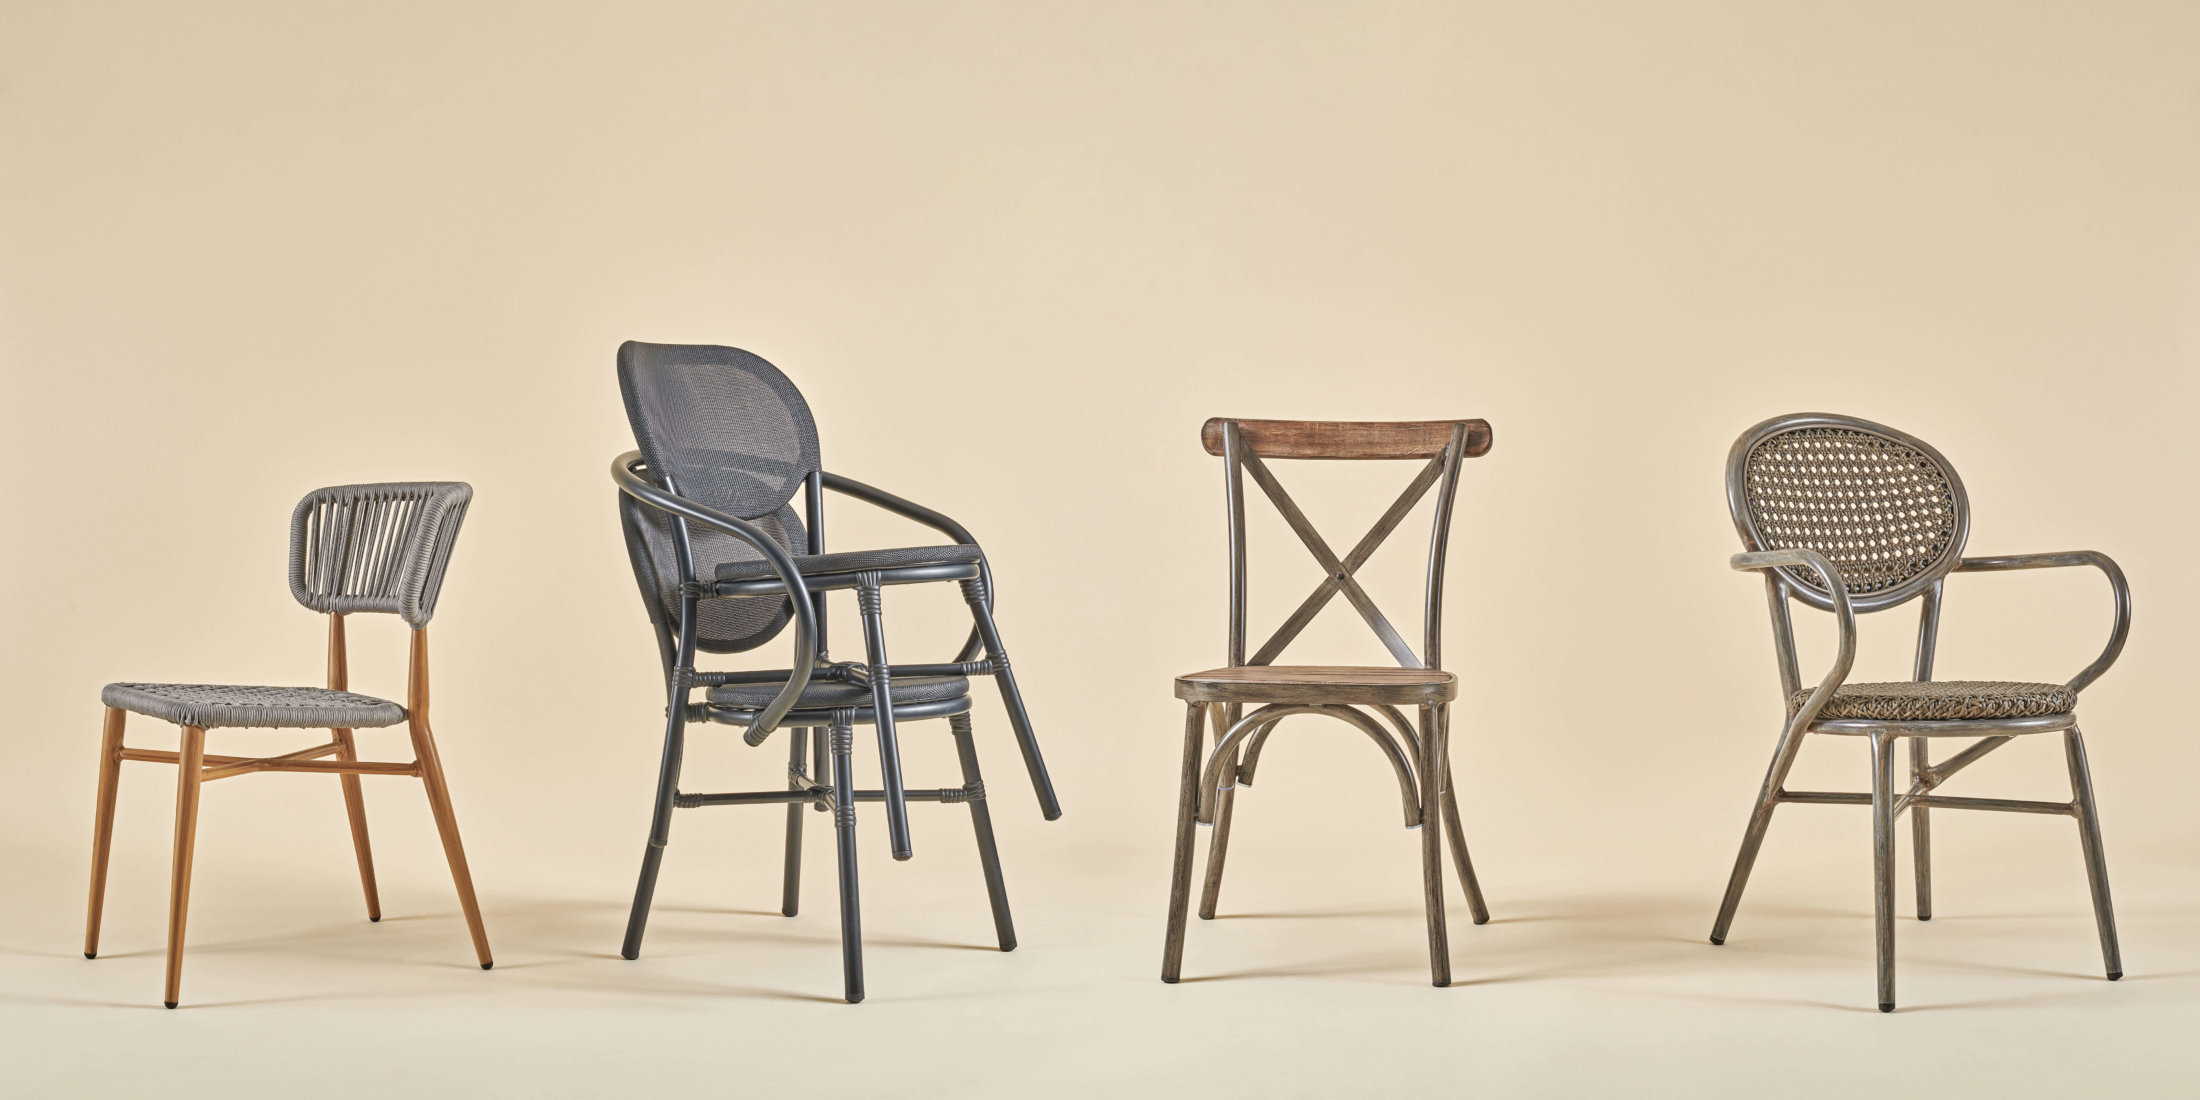 View Outdoor Chairs & Stools category